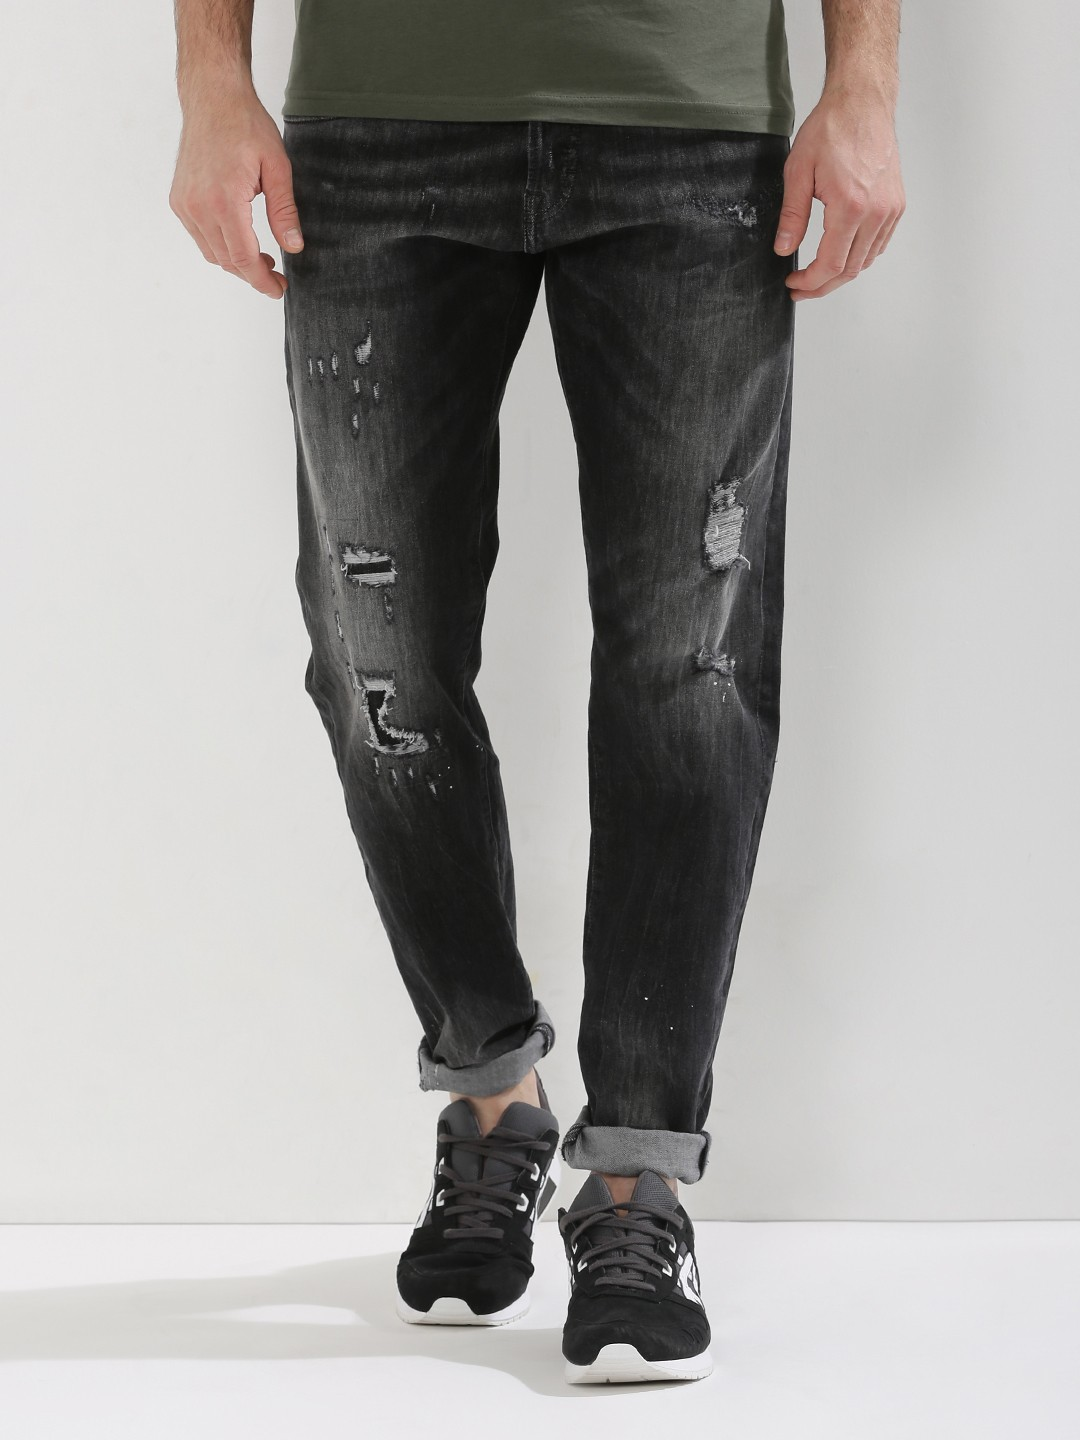 wholesale price genuine shoes running shoes Buy Jack & Jones Black Erik Anti Fit Jeans With Rips for Men ...